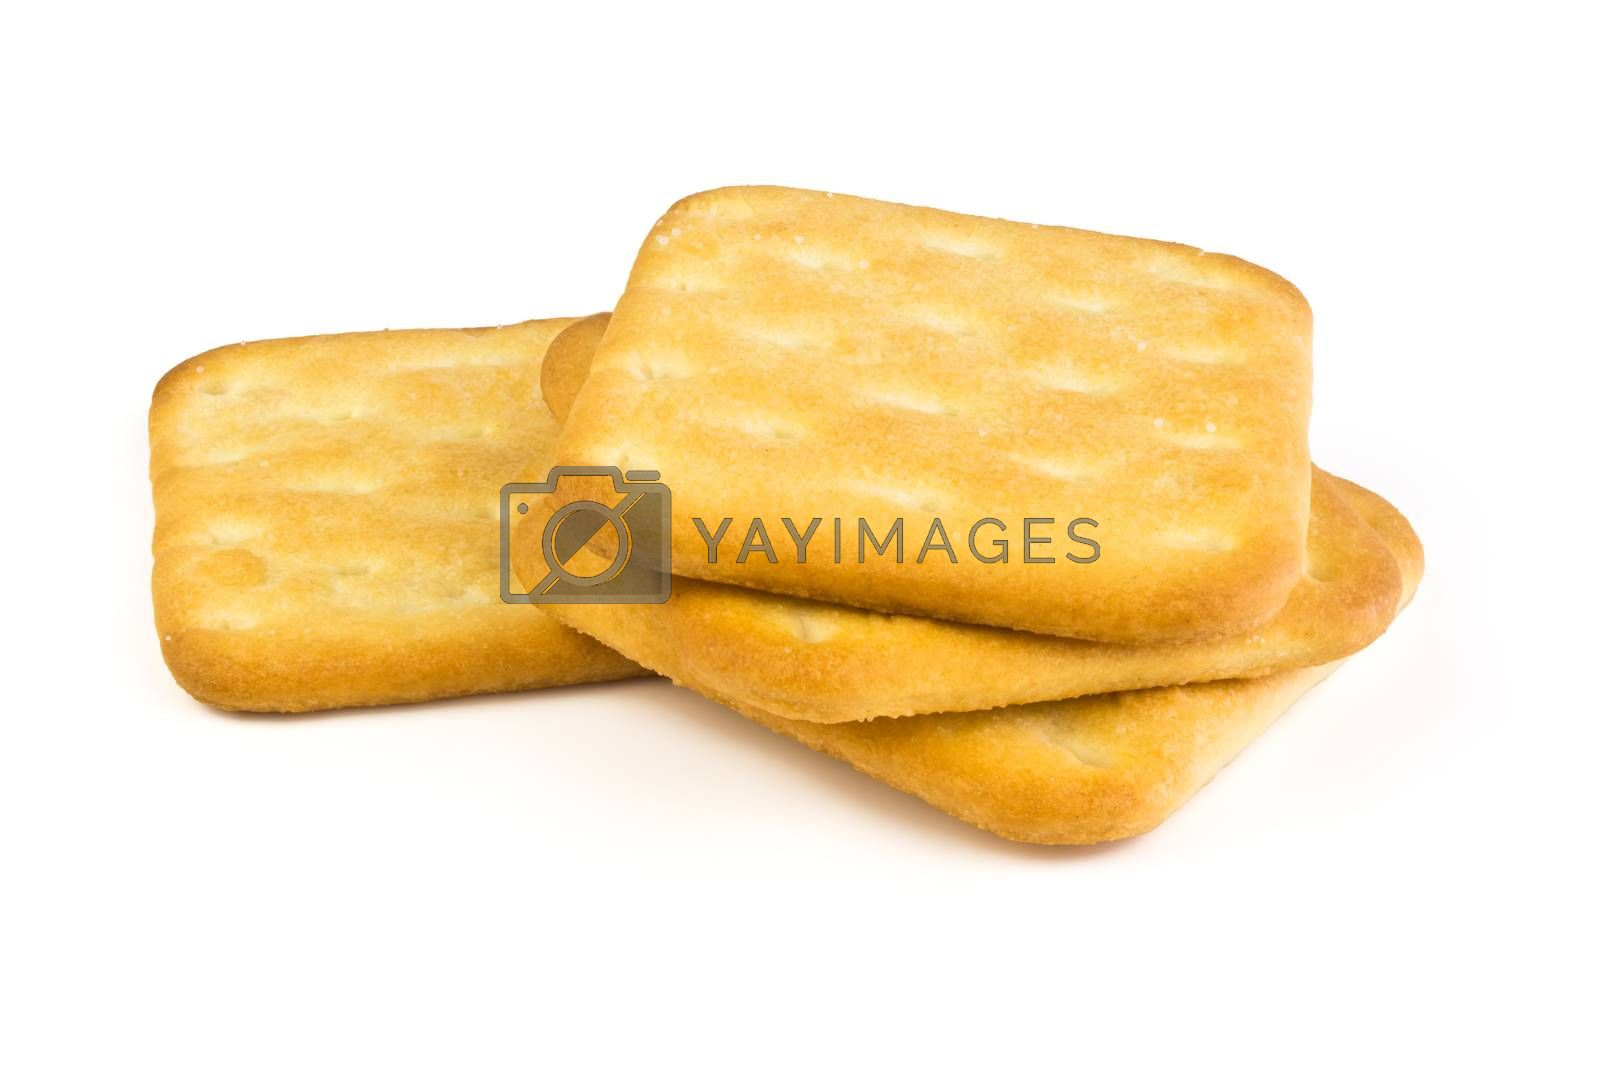 Royalty free image of Dry crackers by pilotL39